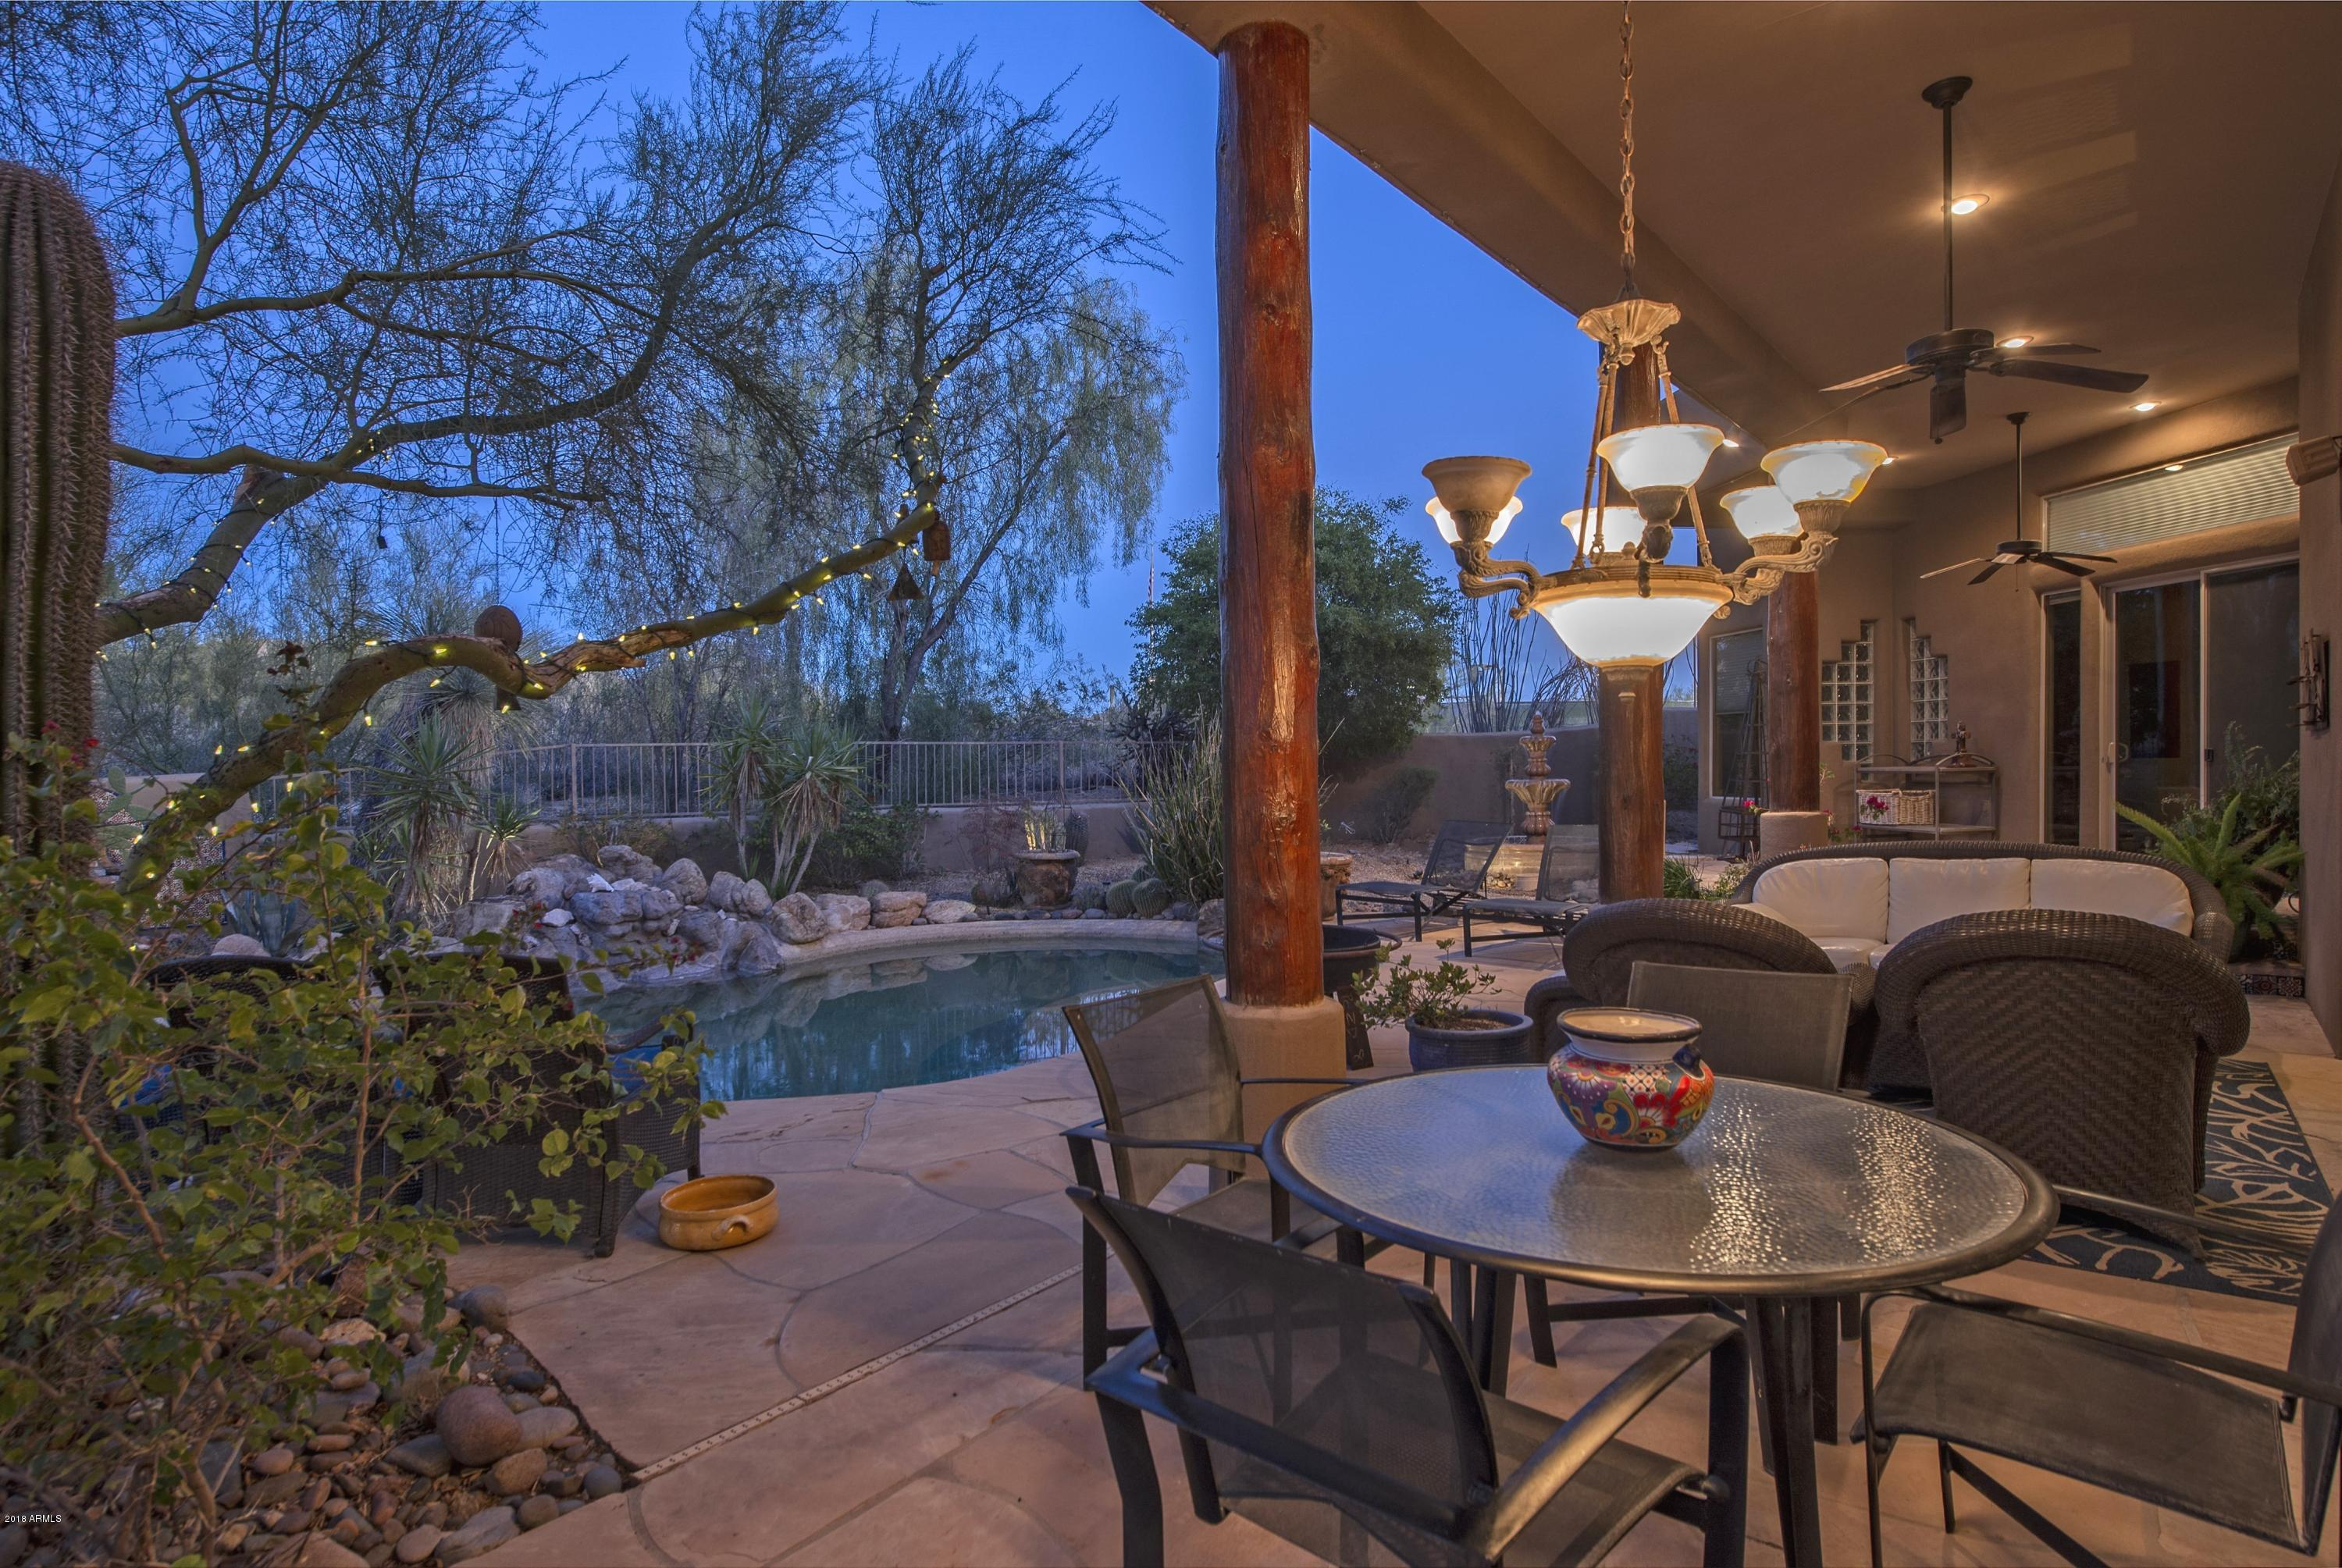 MLS 5721324 8400 E DIXILETA Drive Unit 121, Scottsdale, AZ 85266 Scottsdale AZ Private Pool